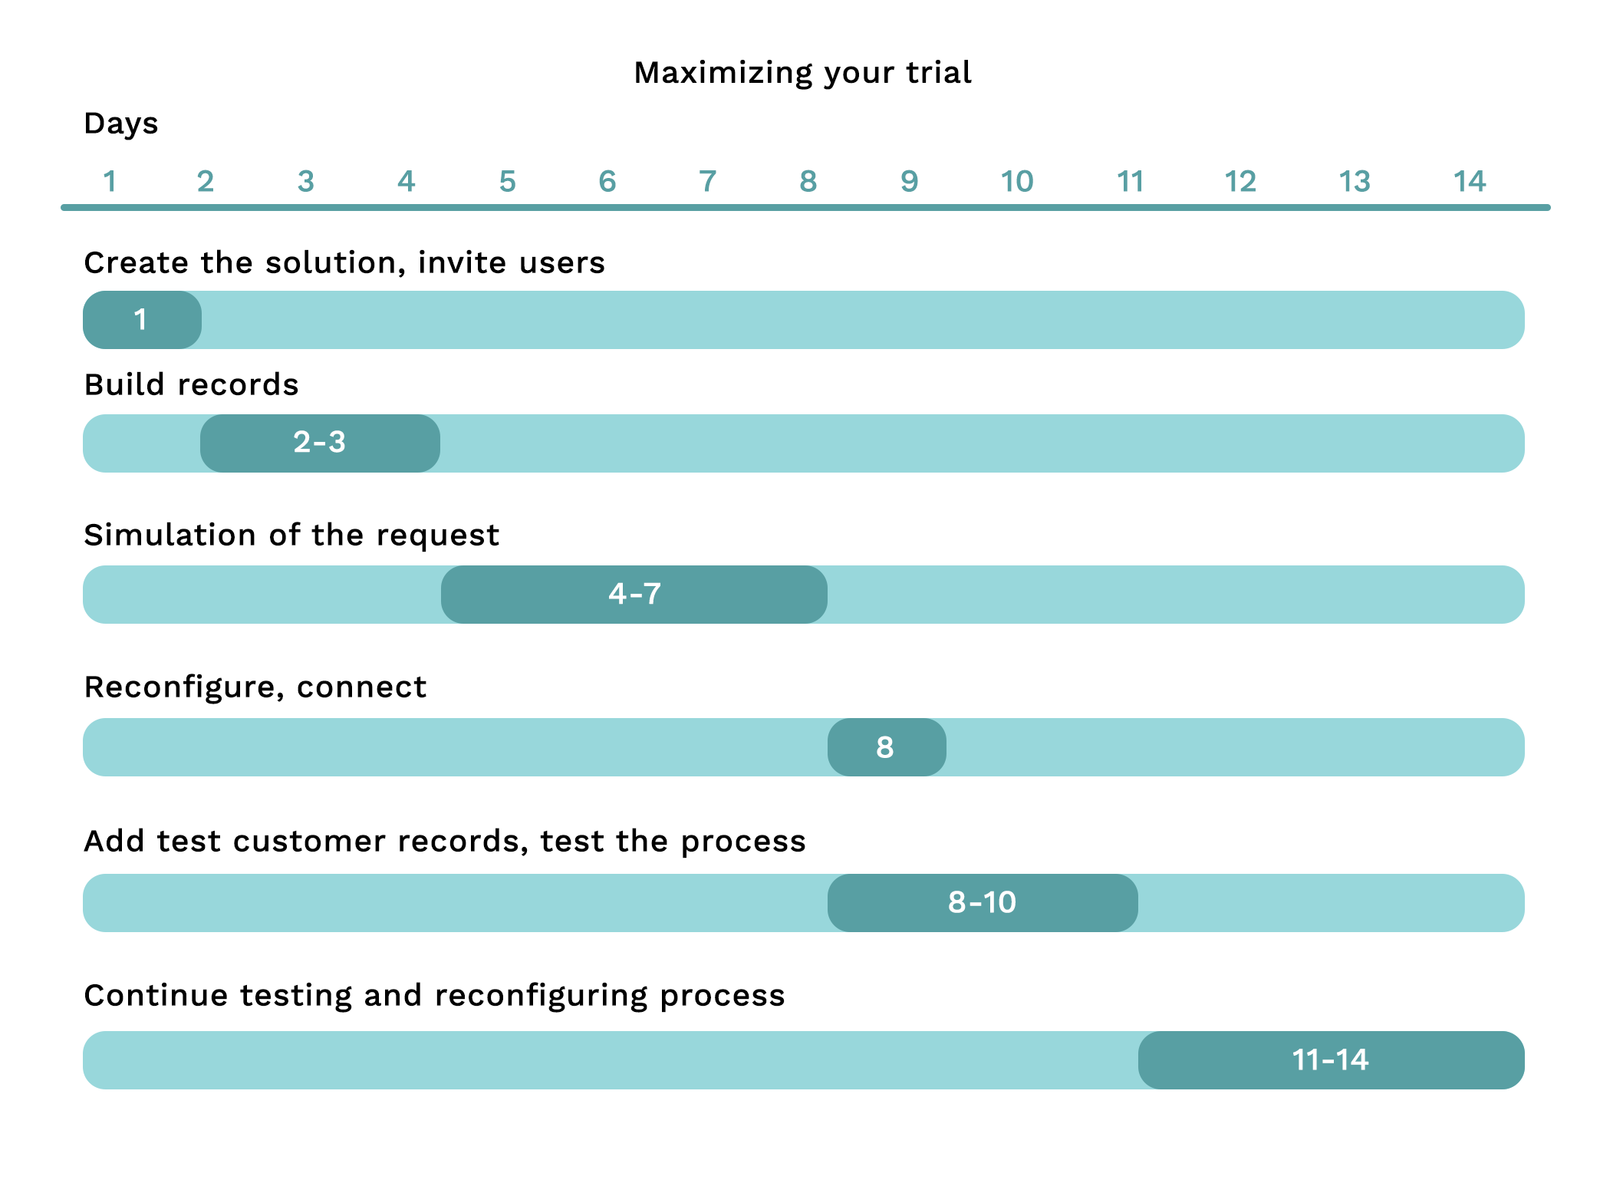 A suggested plan on how to get started with your 14-day trial period